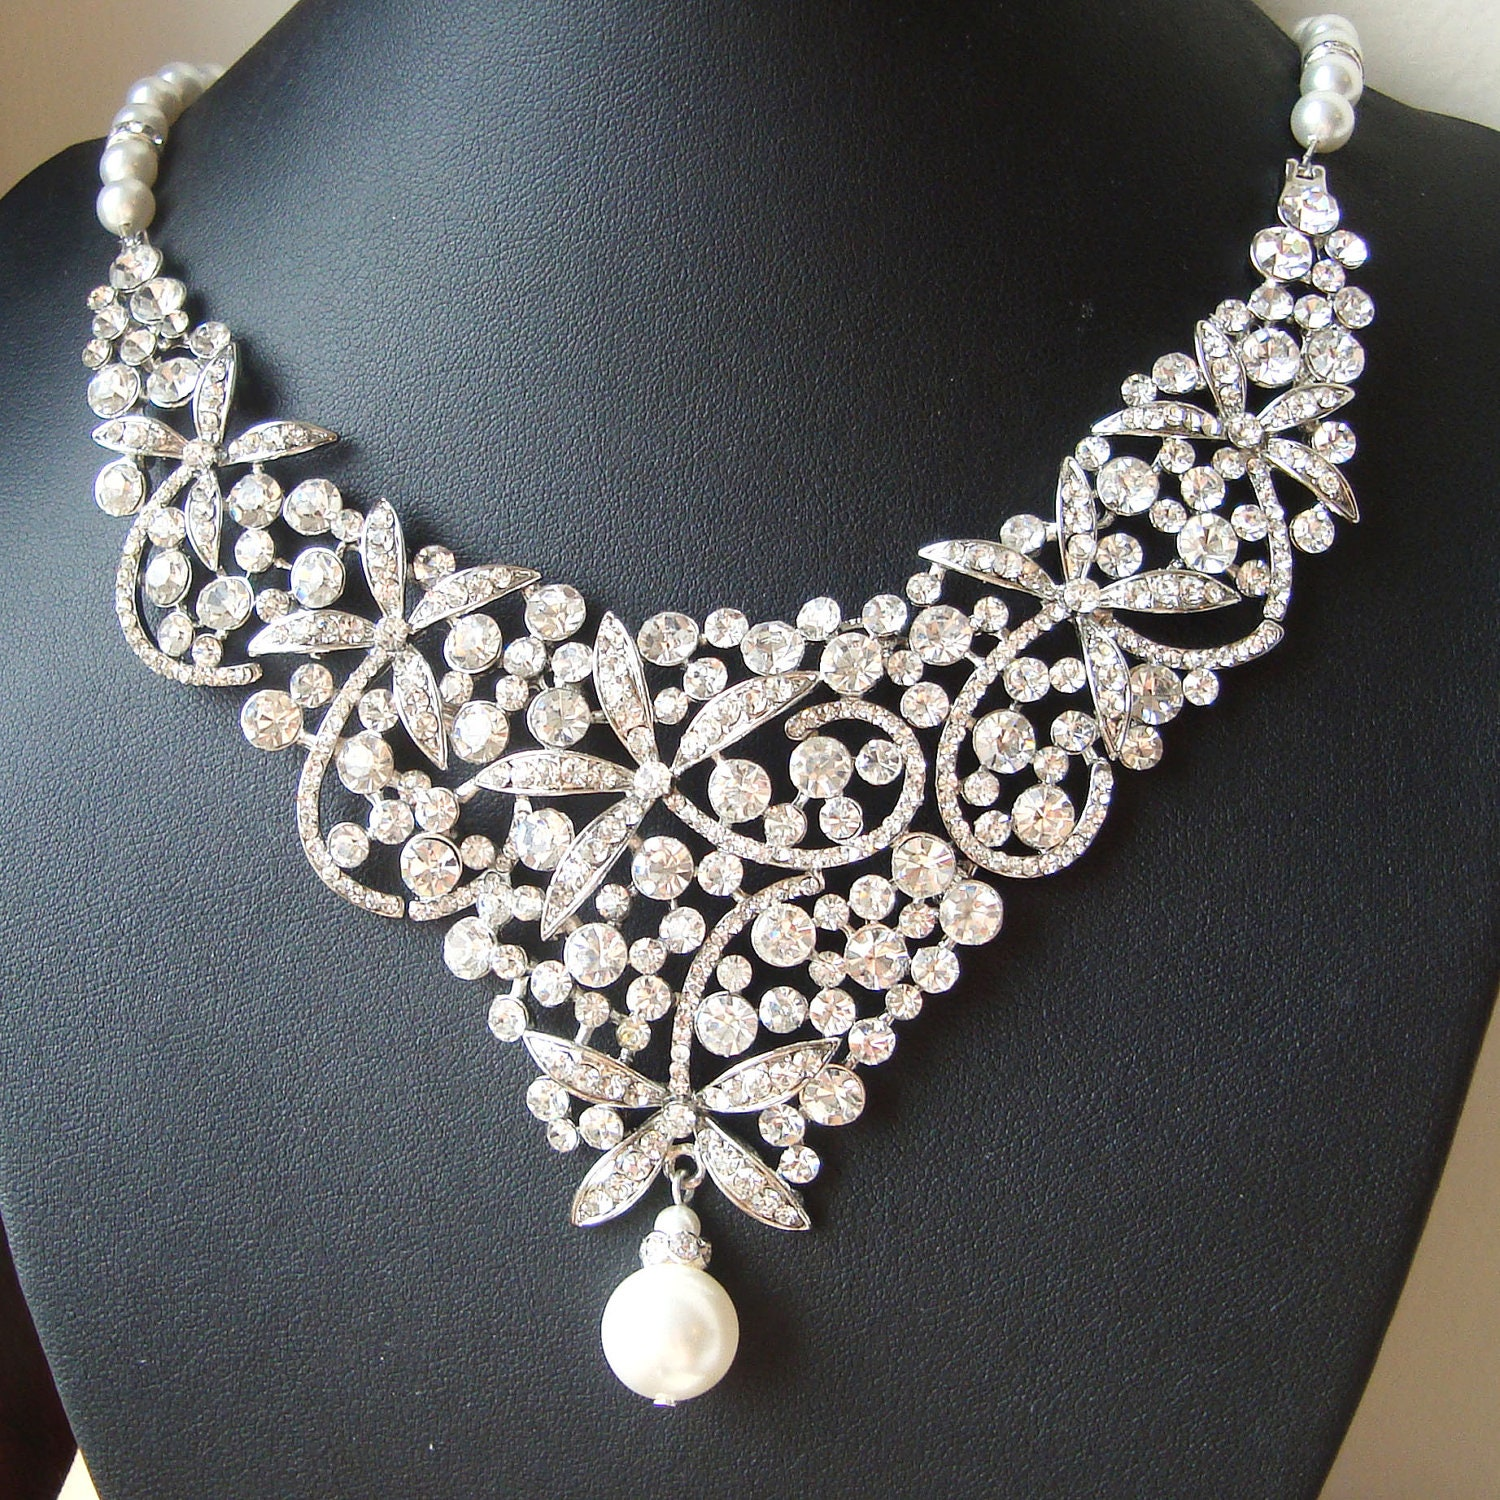 Statement bridal necklace crystal bib wedding necklace for Wedding ring necklace